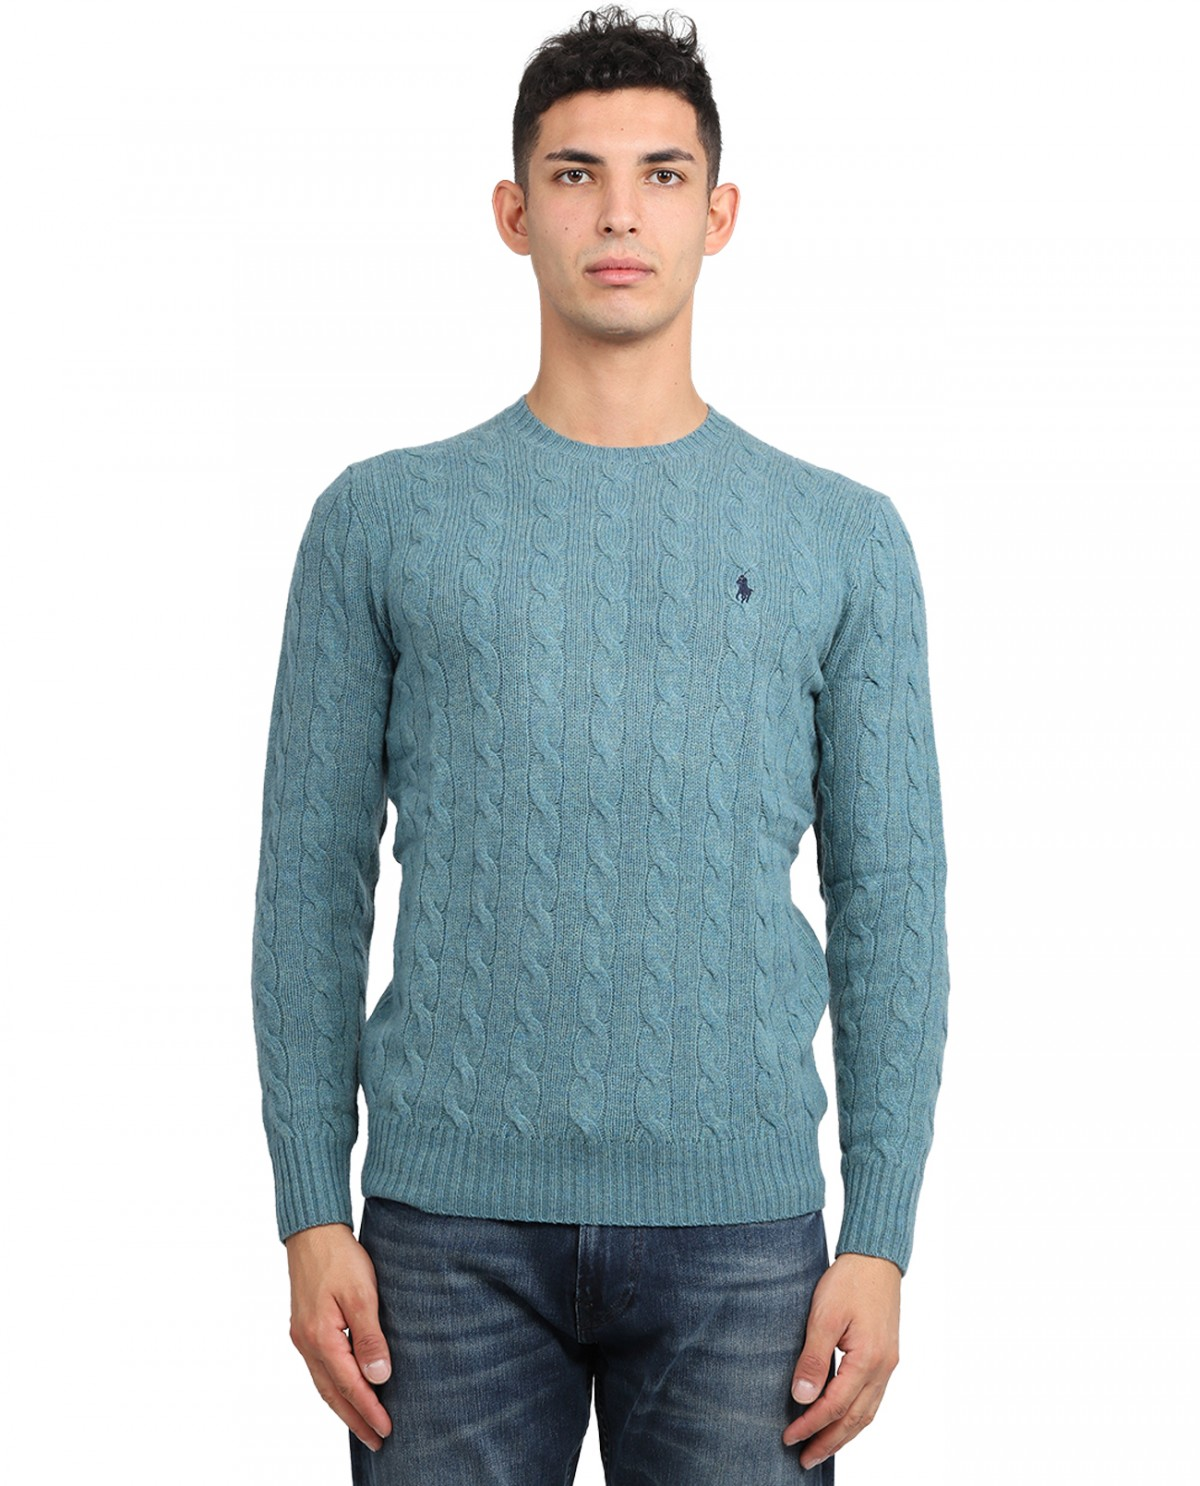 Polo Ralph Lauren blue sweater